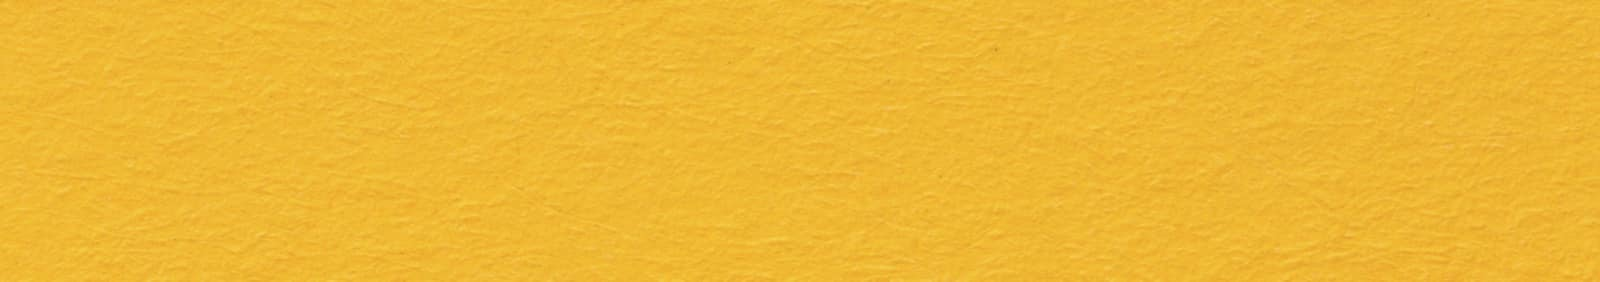 Yellow paper background, colorful paper texture. High resolution photo.